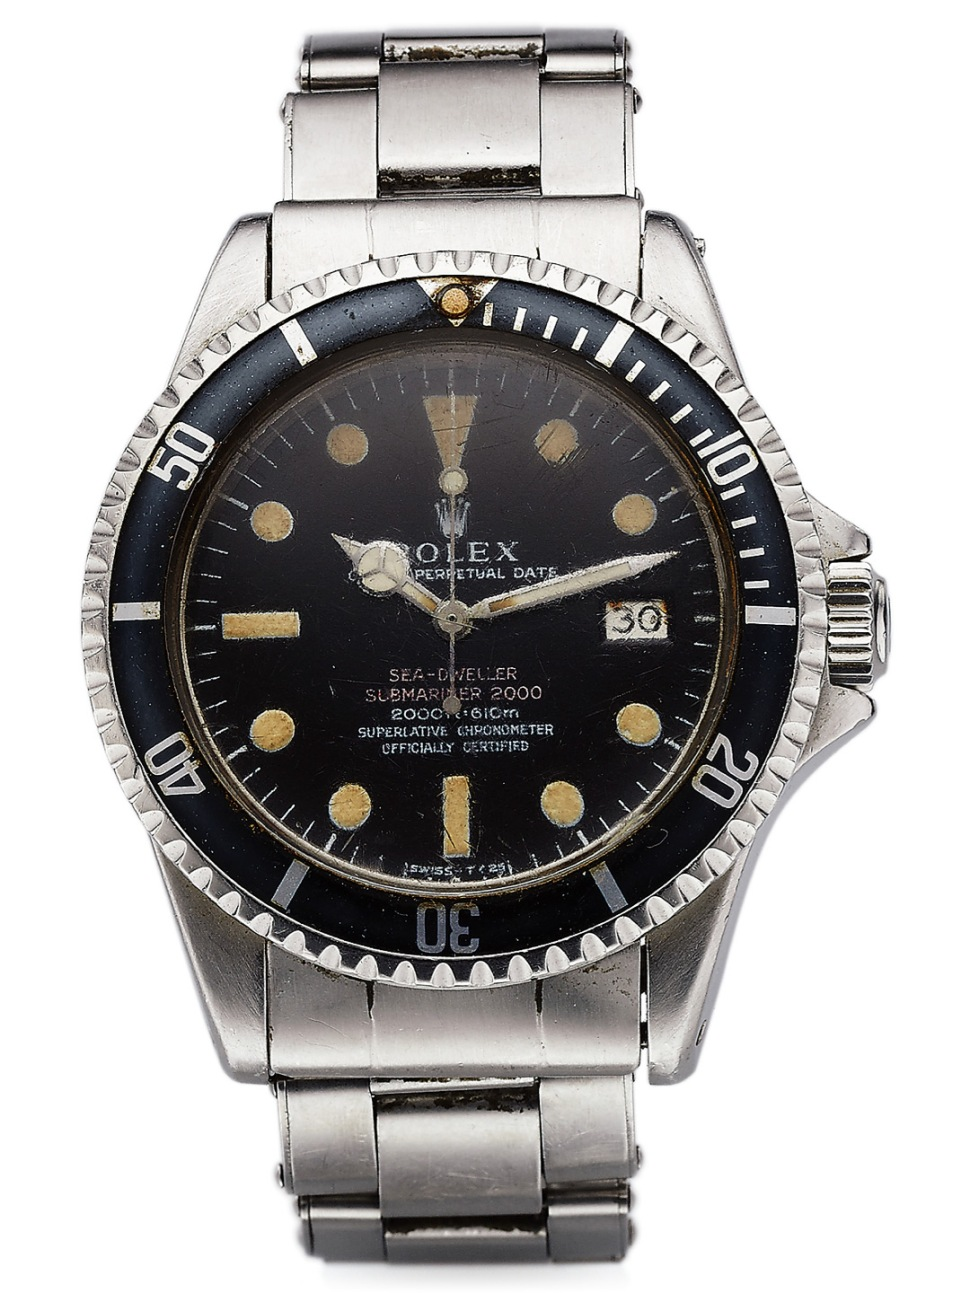 200615-rolex-sea-dweller-1665-1602920-double-red-mk-1-philippe-cousteau-front